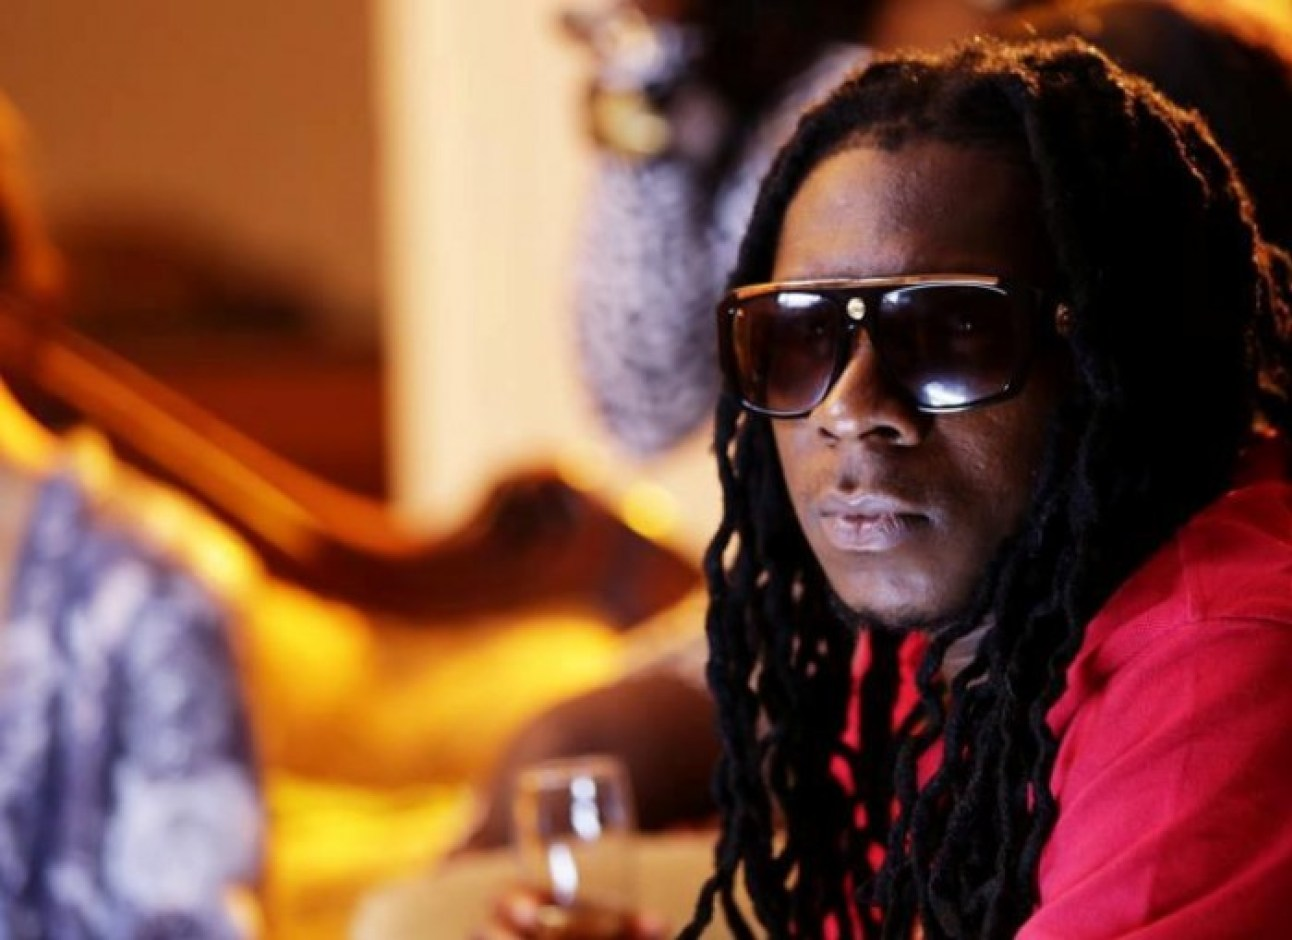 Only those not from the Ghettos hate Shatta Wale – Mugeez